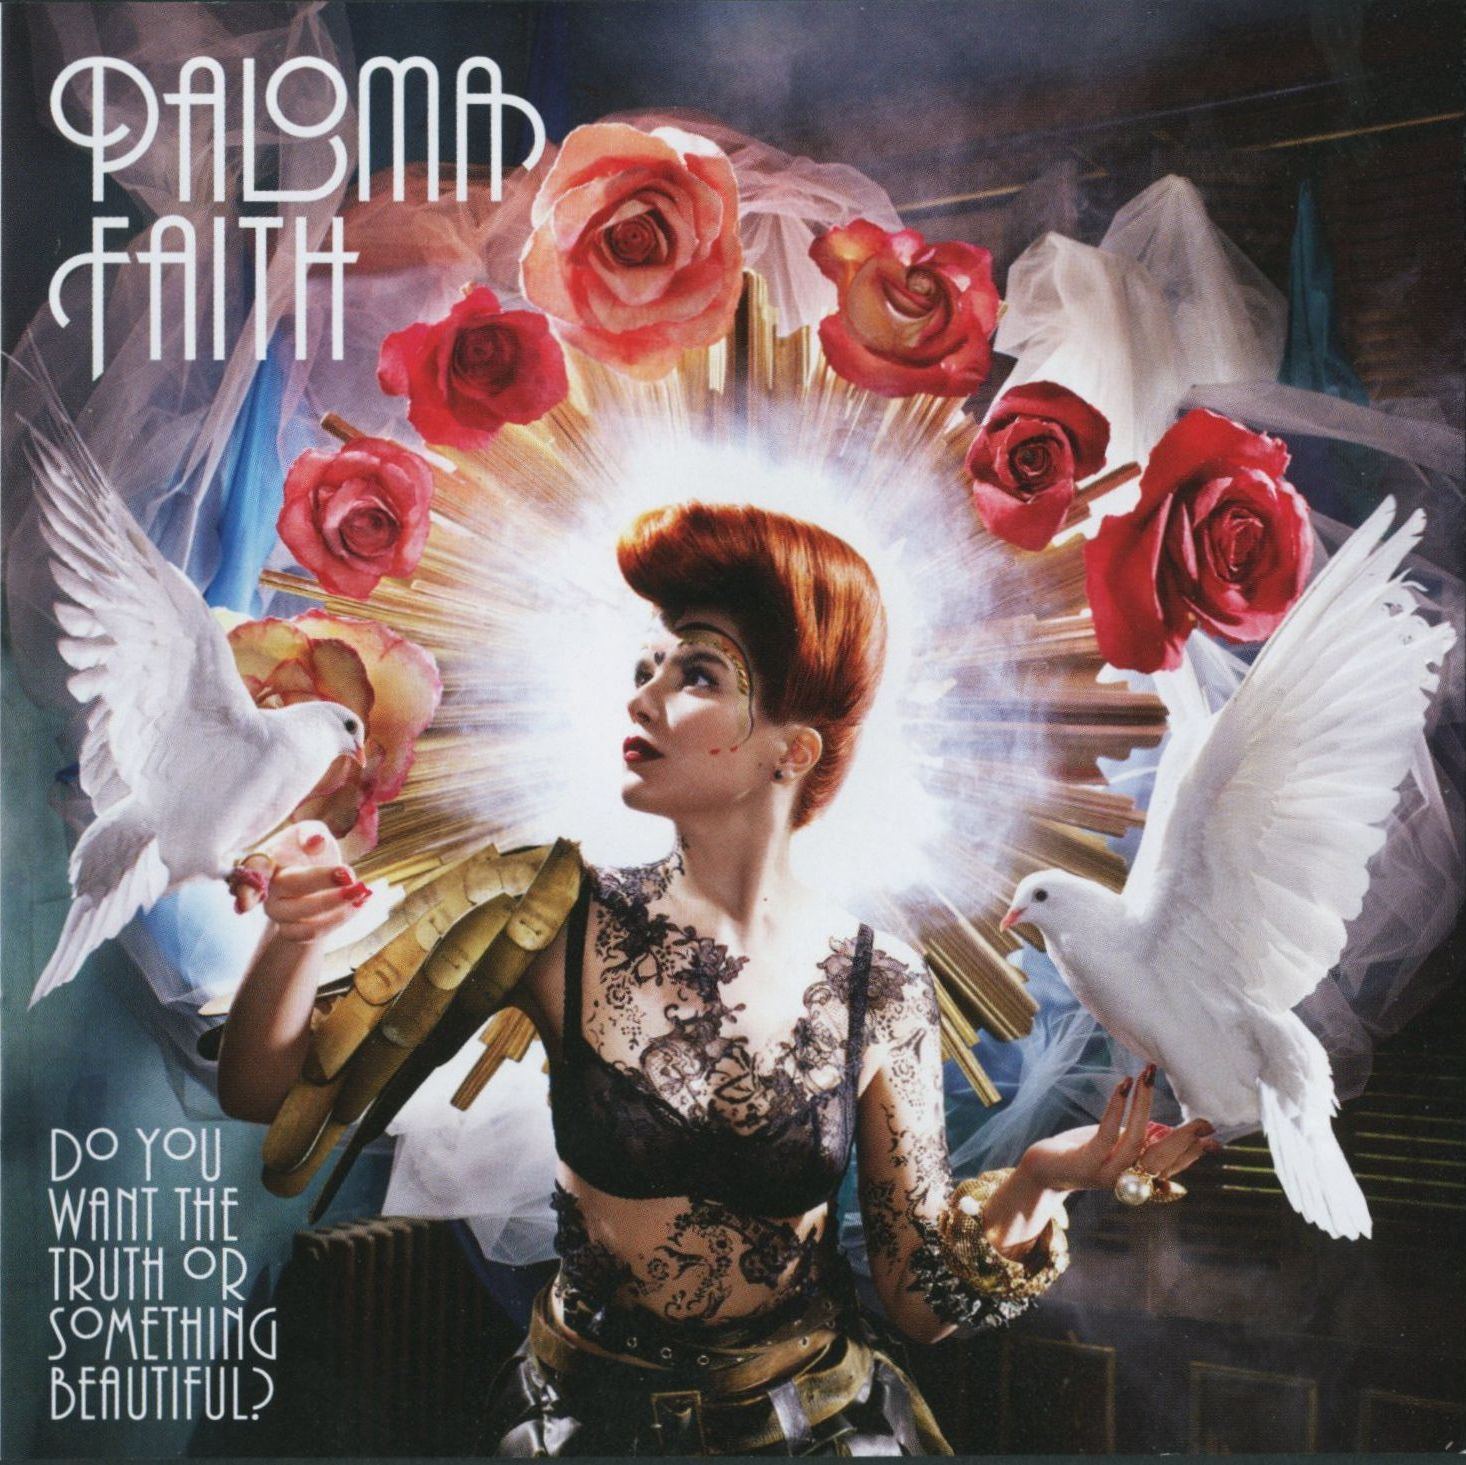 Paloma Faith - Do You Want The Truth Or Something Beautiful album cover